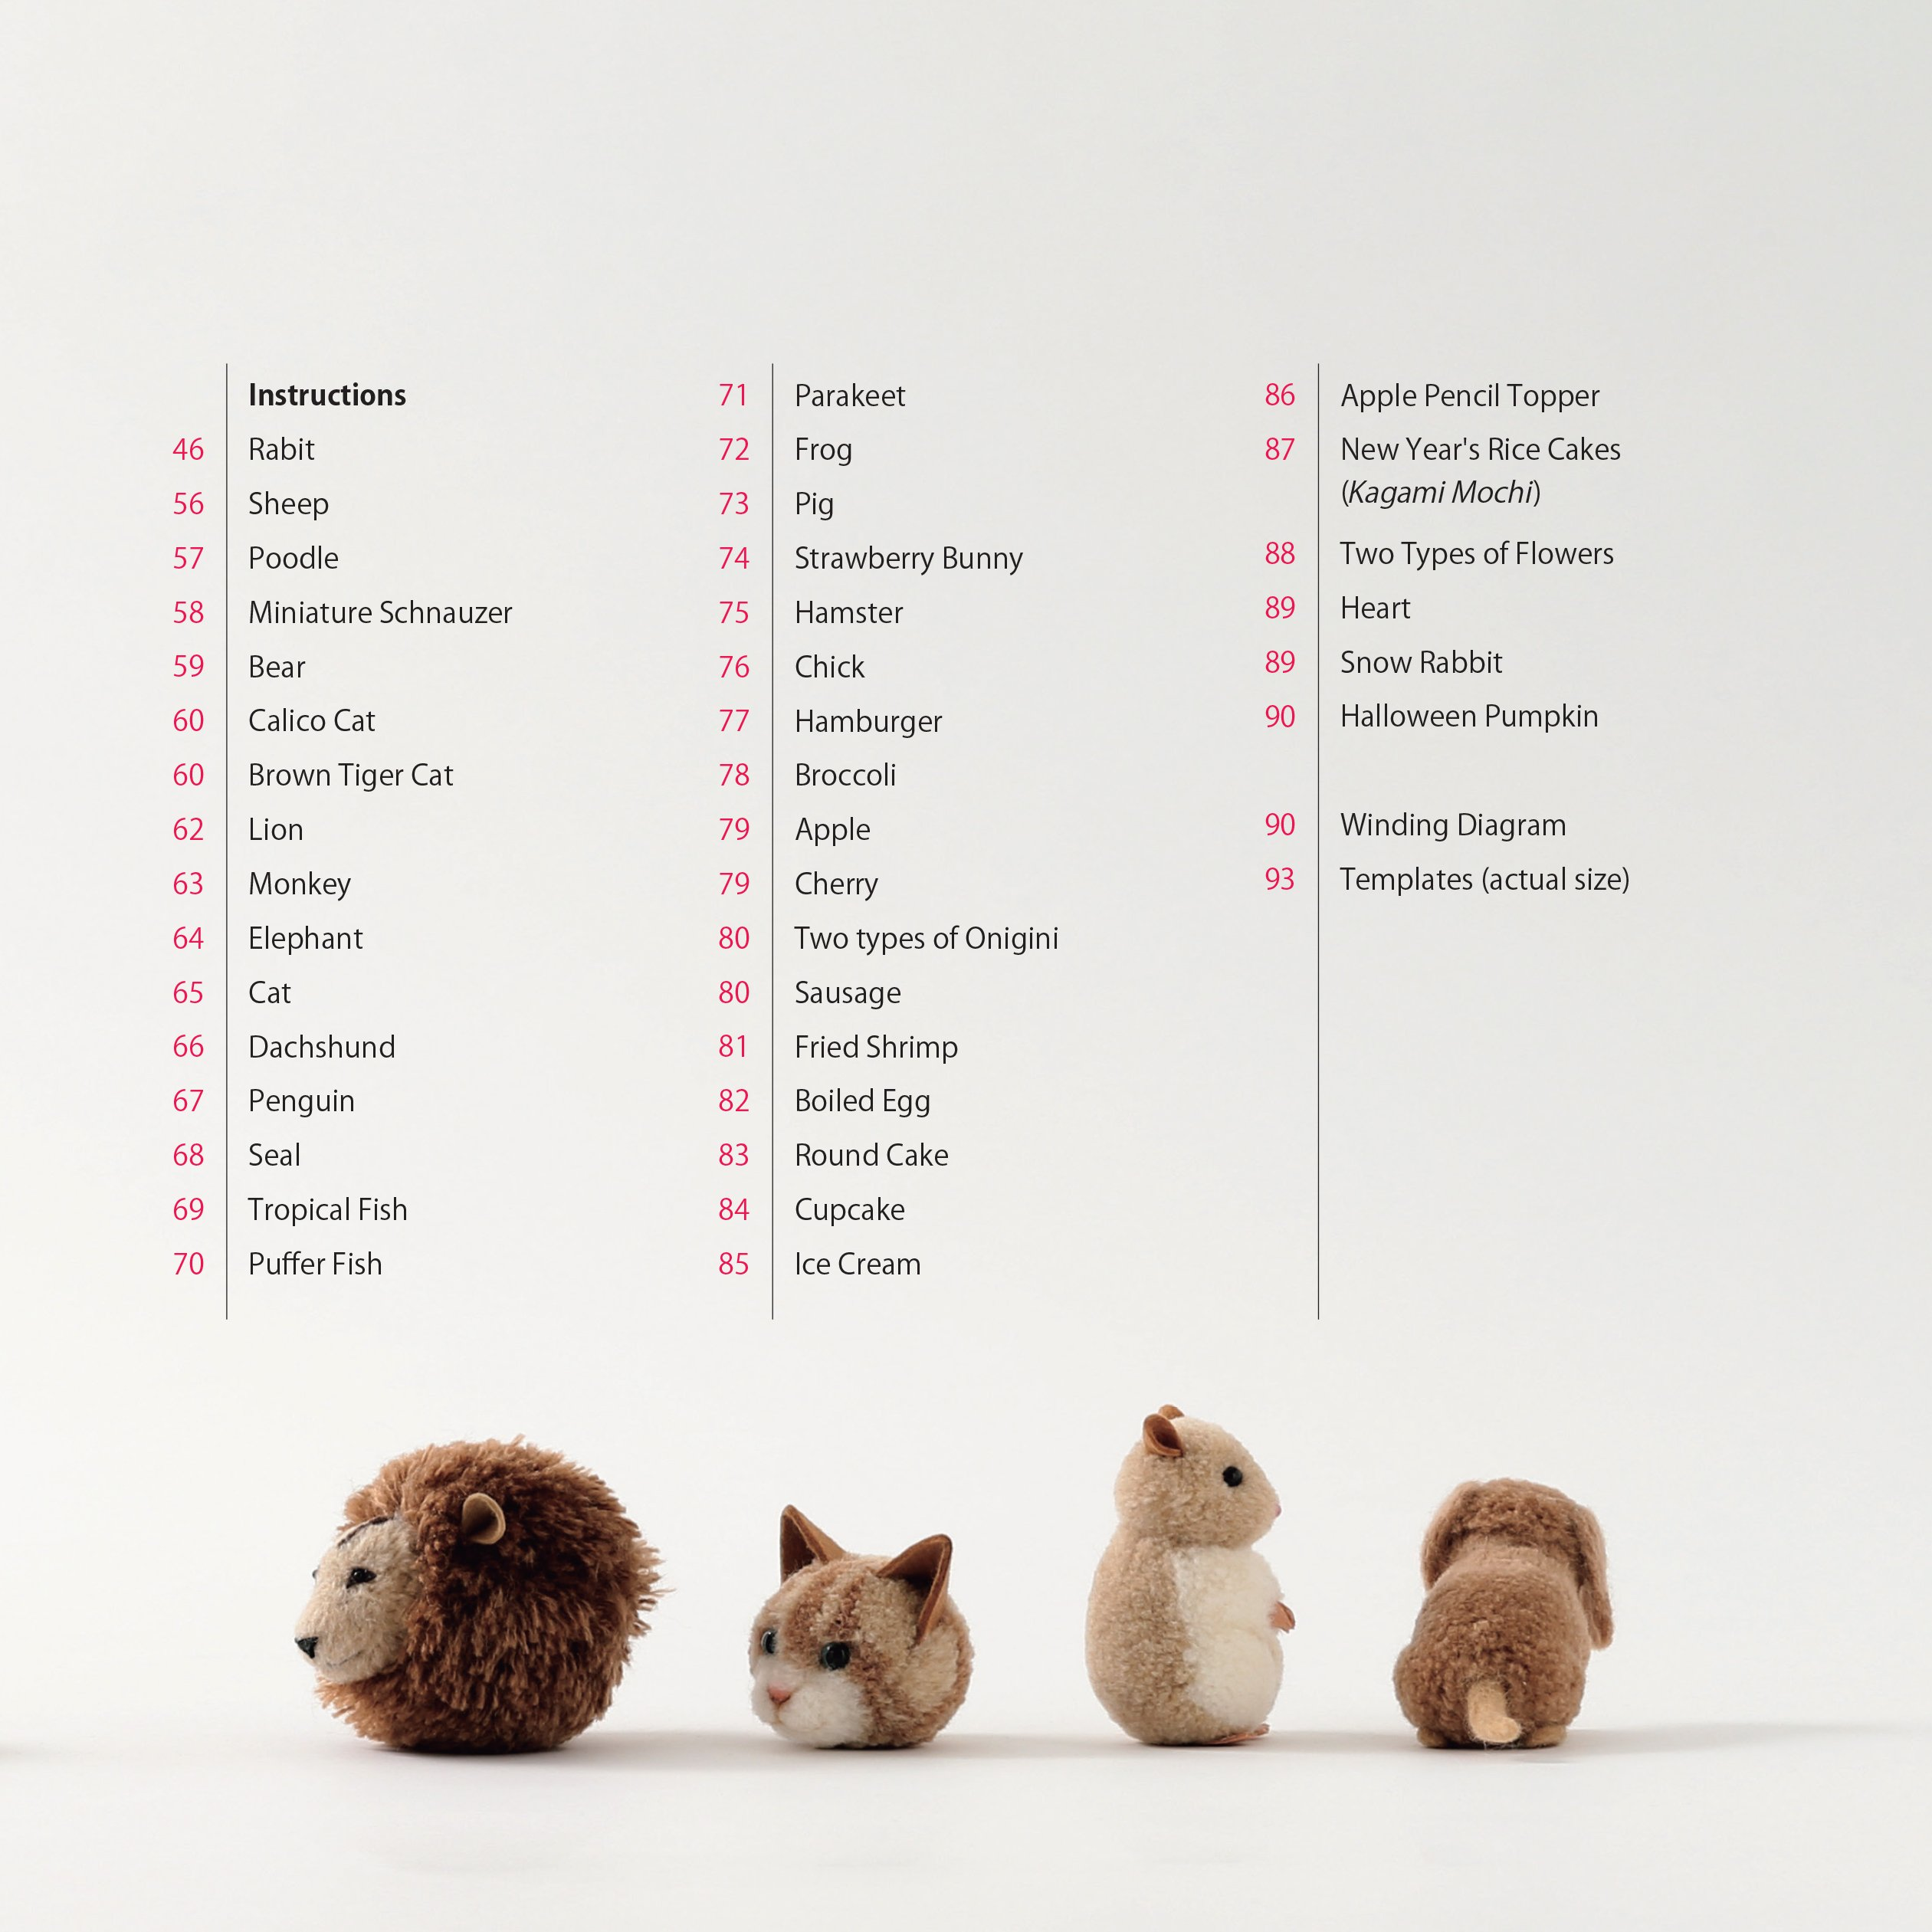 Adorable Pom Pom Animals: Dogs, Cats and Other Woolly Friends by Tuttle Publishing (Image #5)